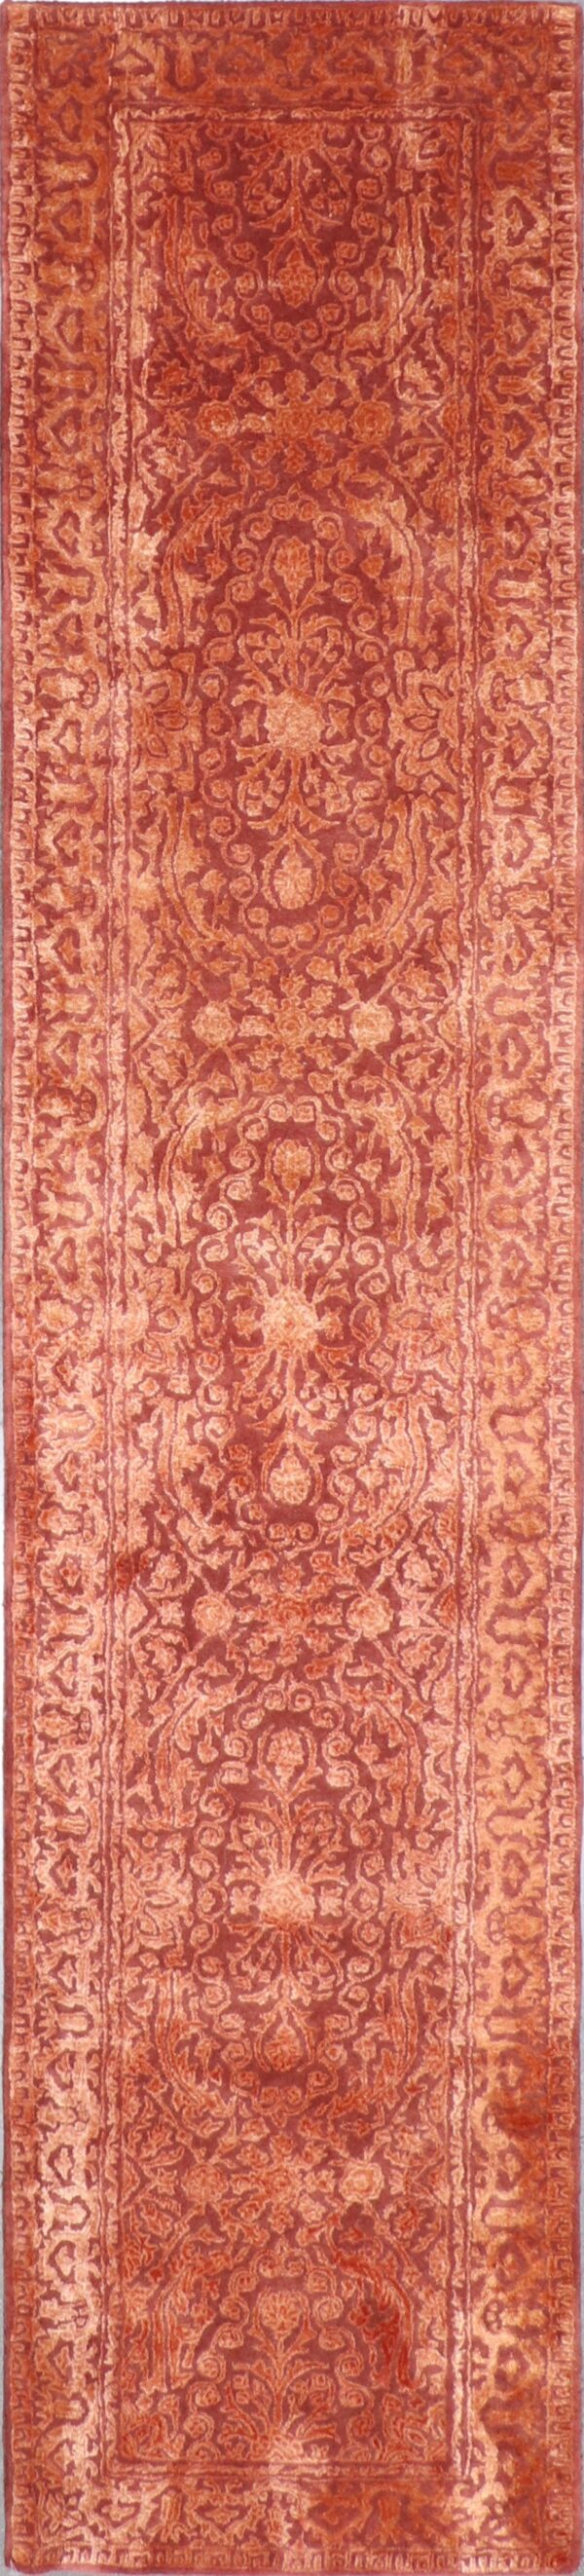 """2'6""""x9'8"""" Transitional Wool & Silk Hand-Tufted Rug - Direct Rug Import 